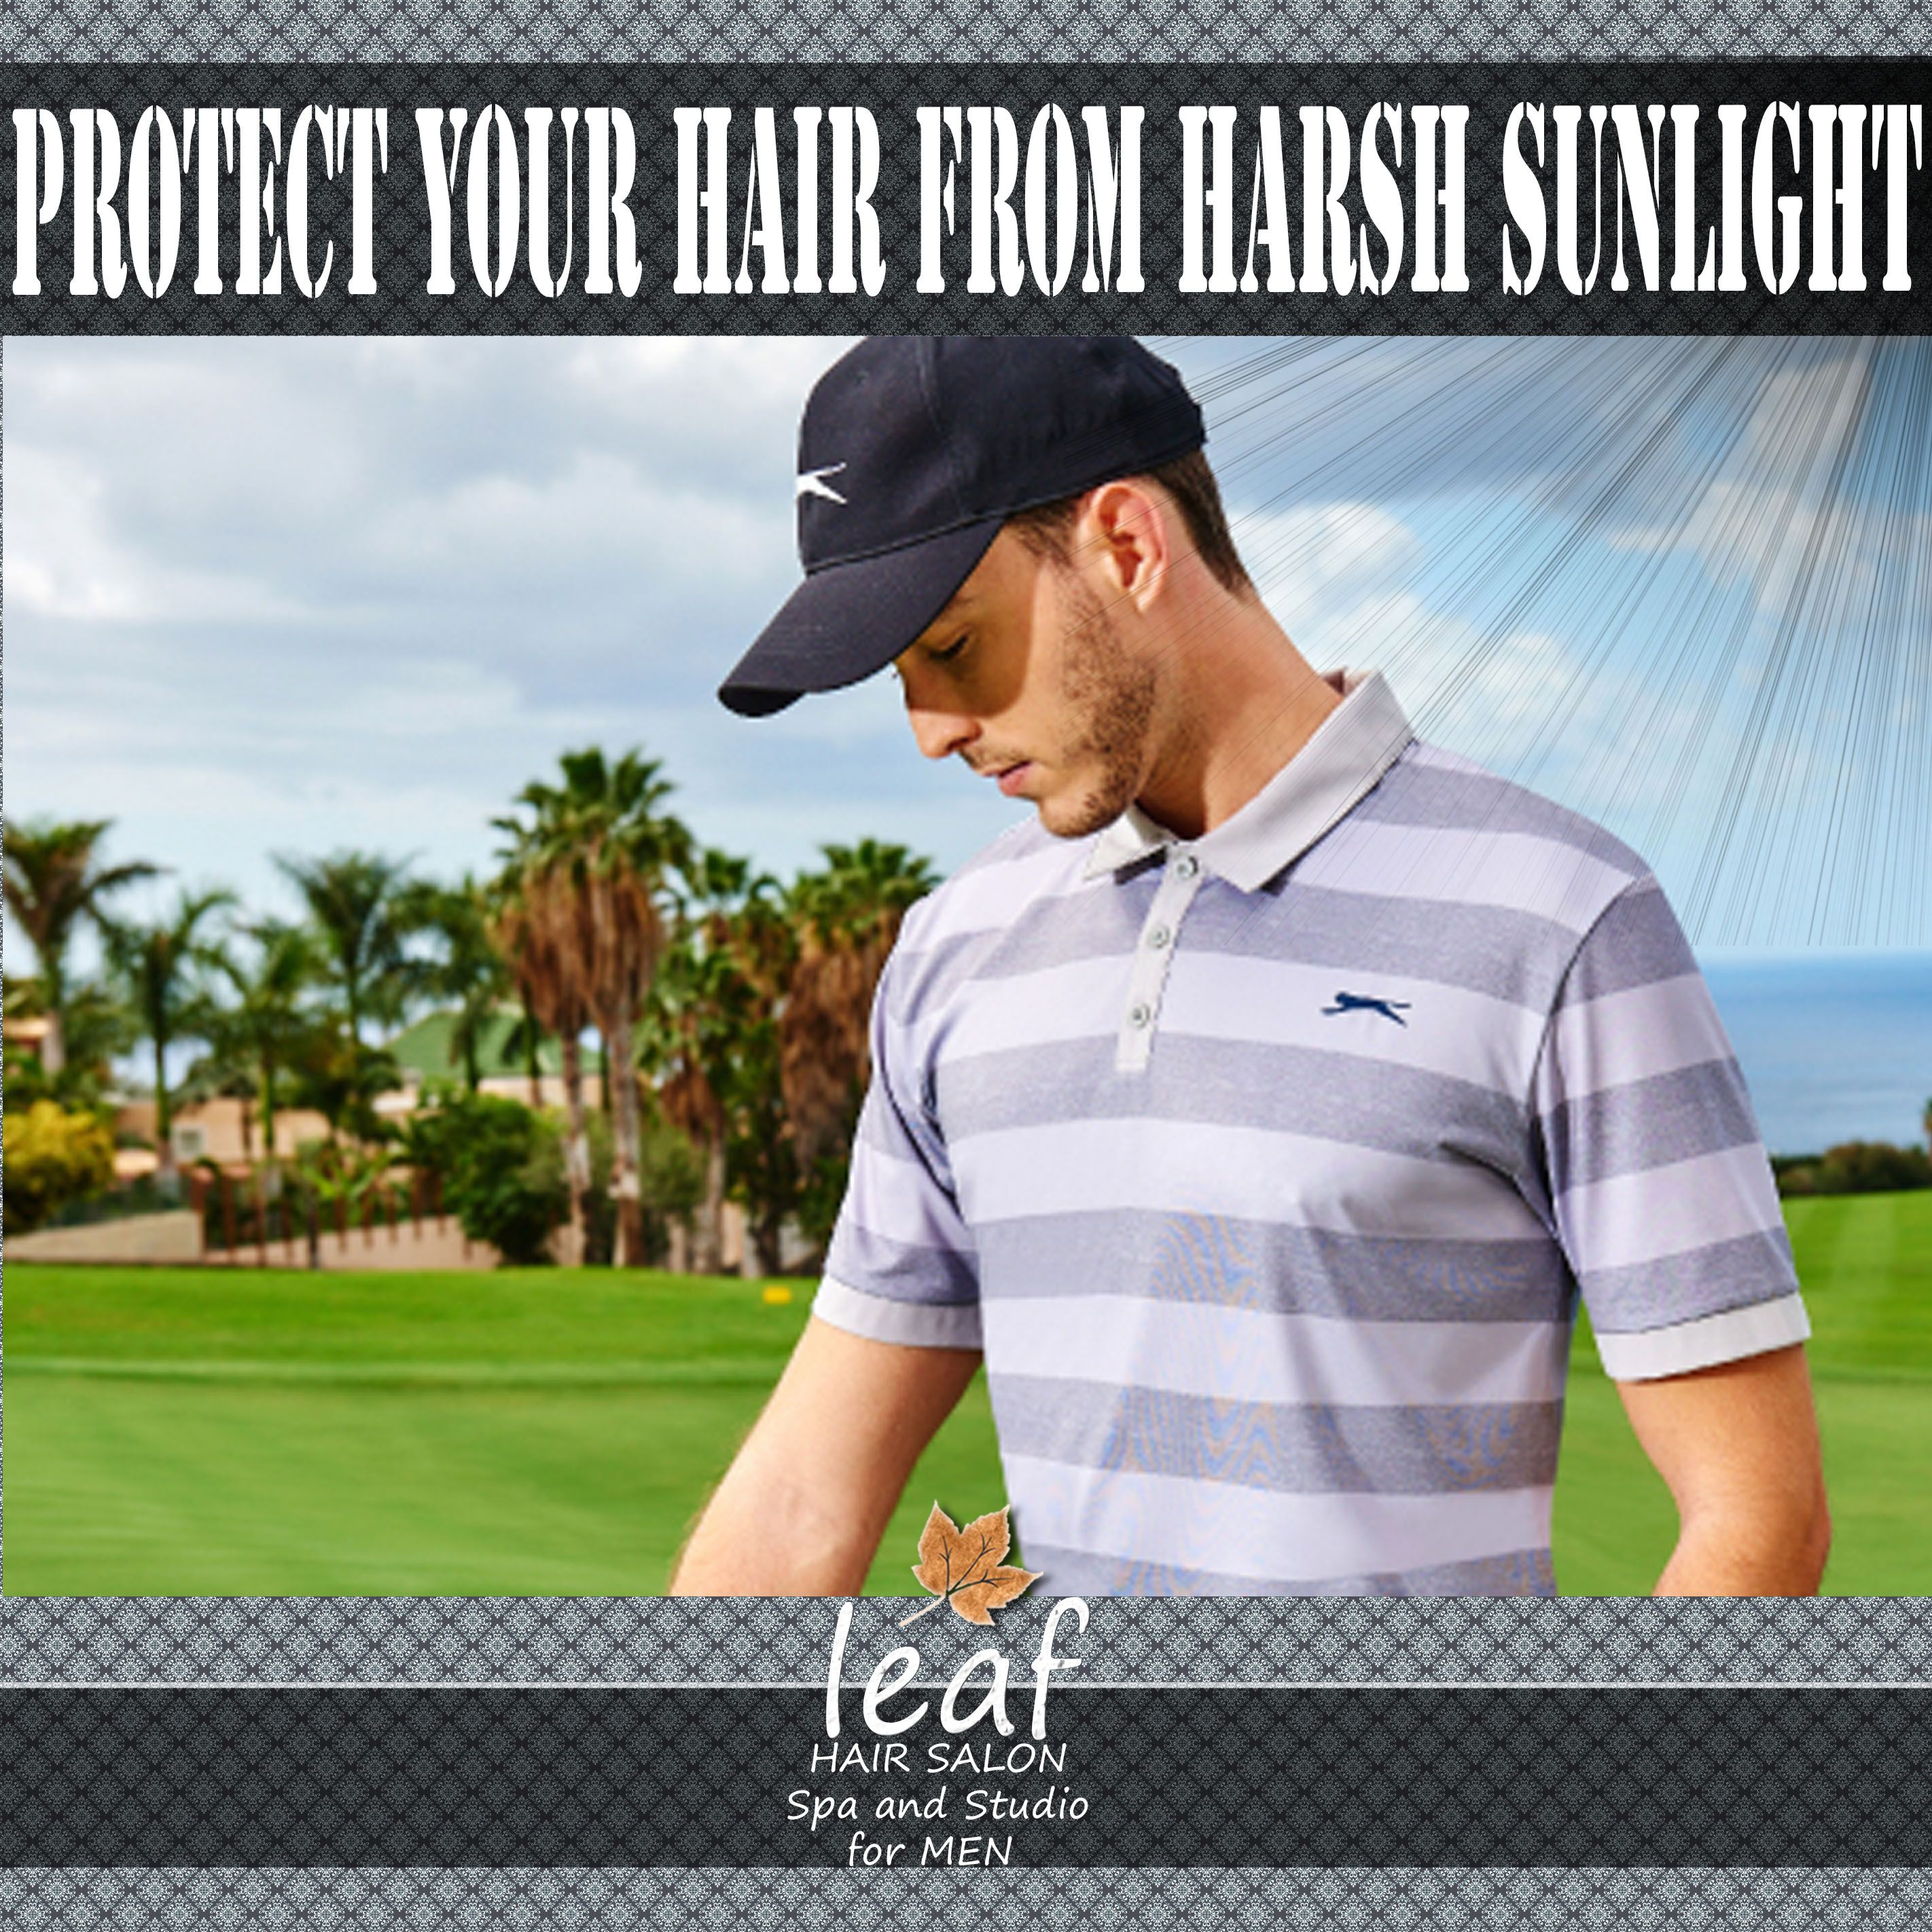 Take care of your hair. Any hair problem do us a visit so